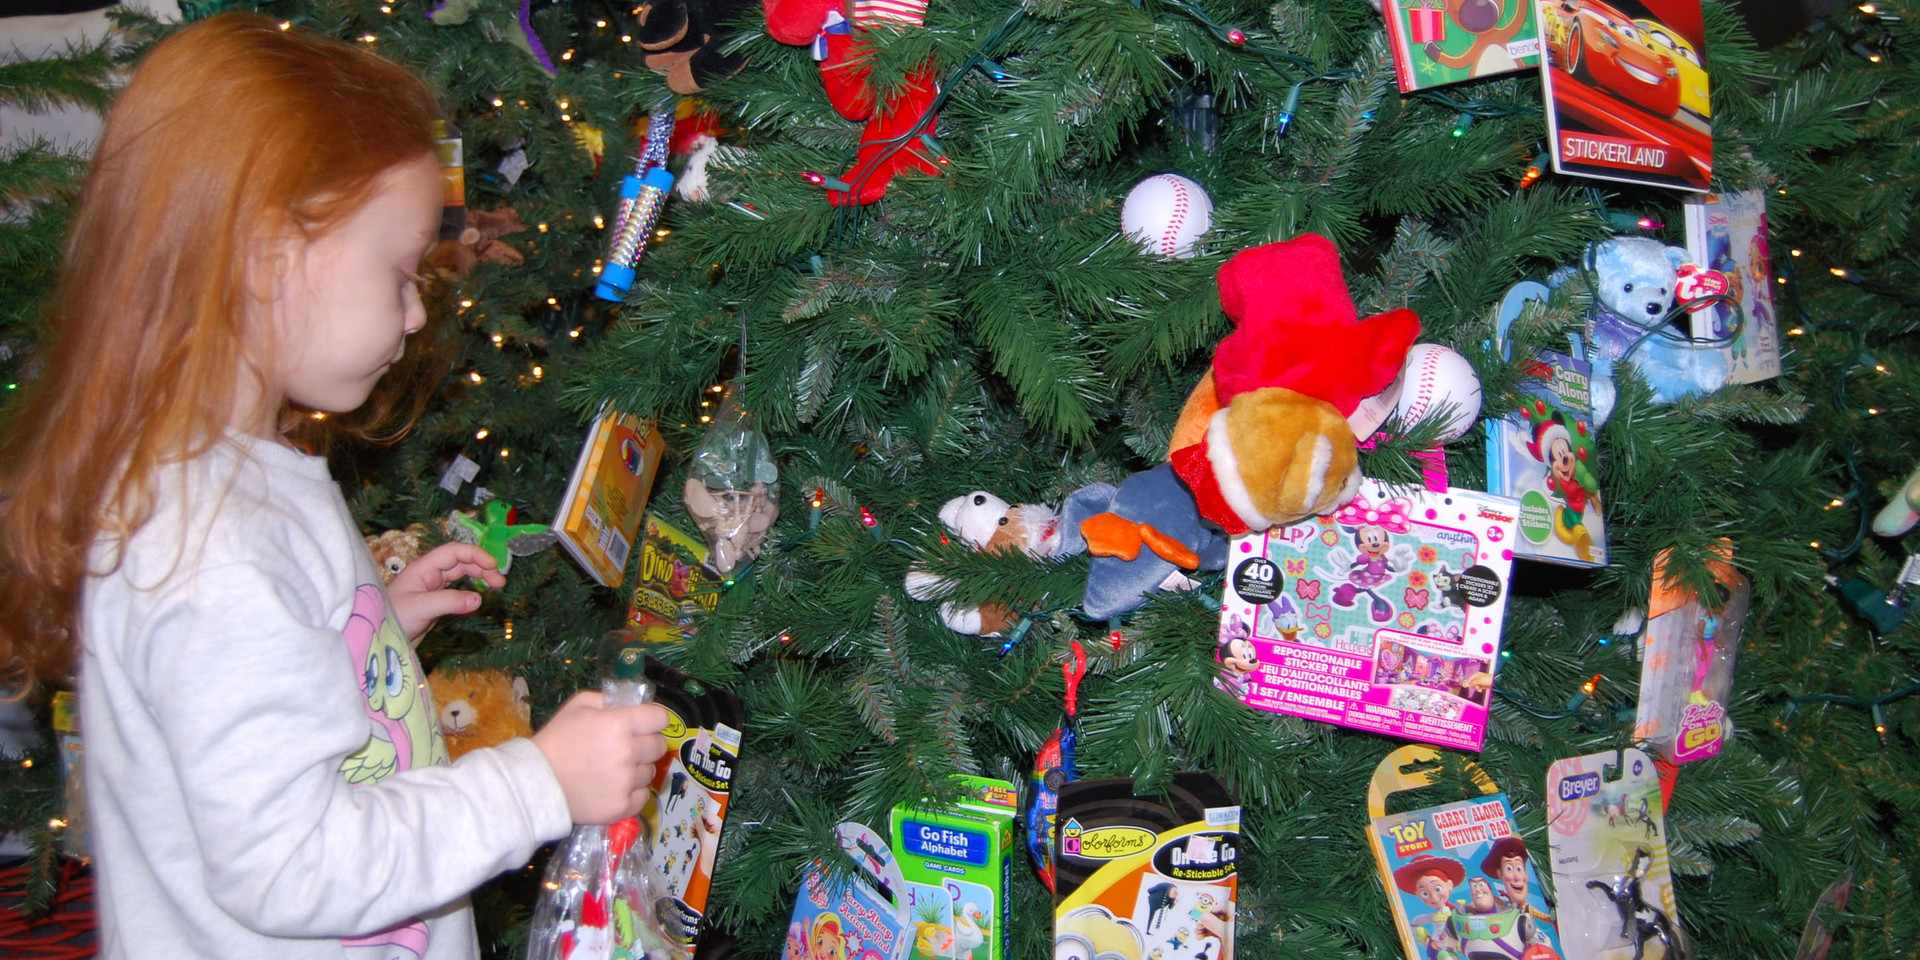 Picking gifts from the tree.